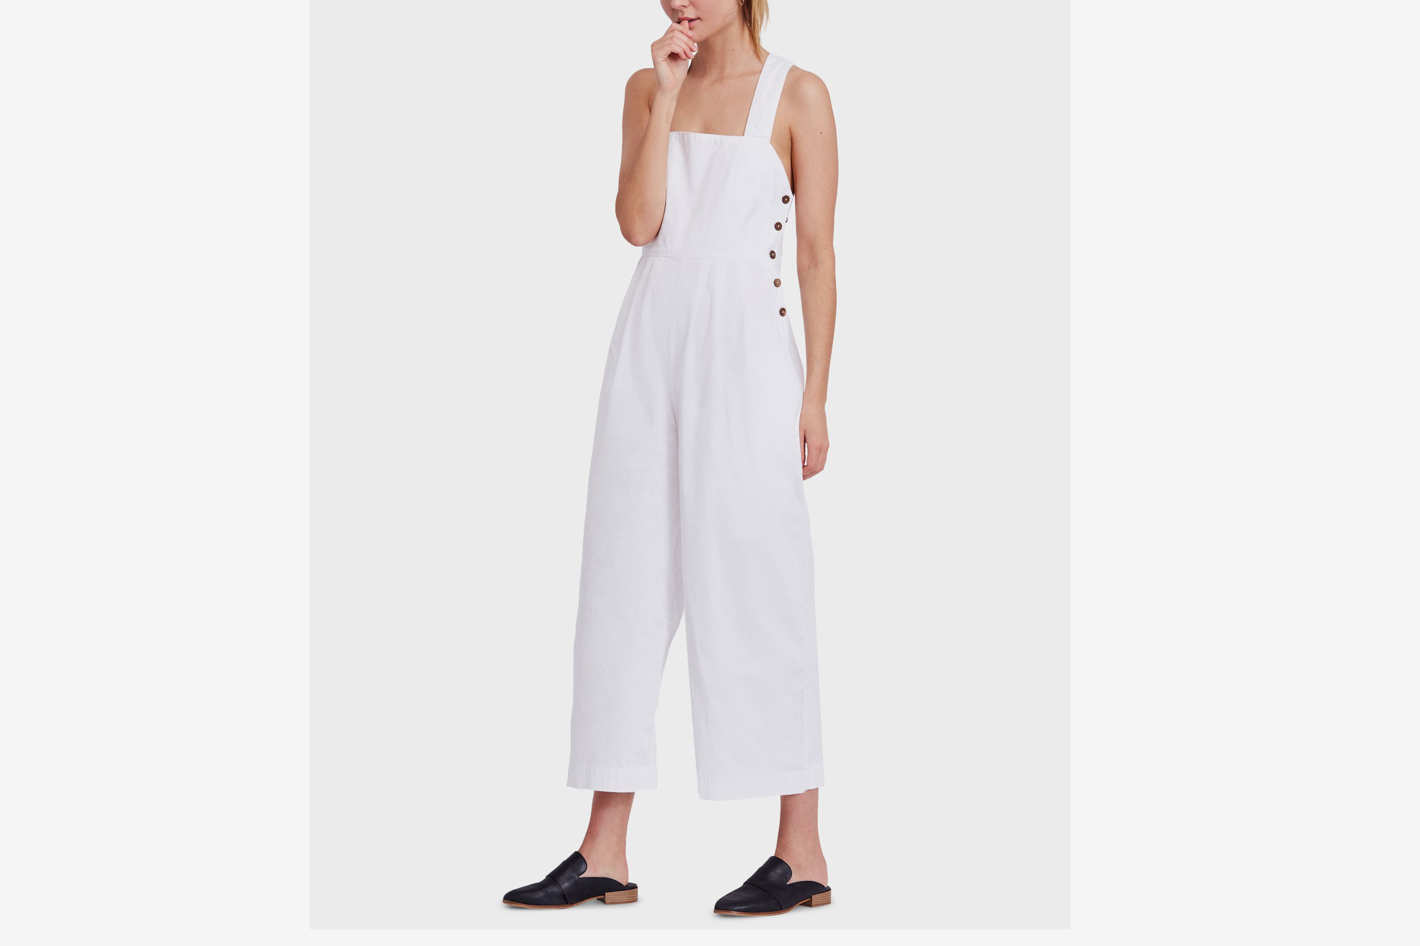 Free People Farah Cotton Crisscross Jumpsuit